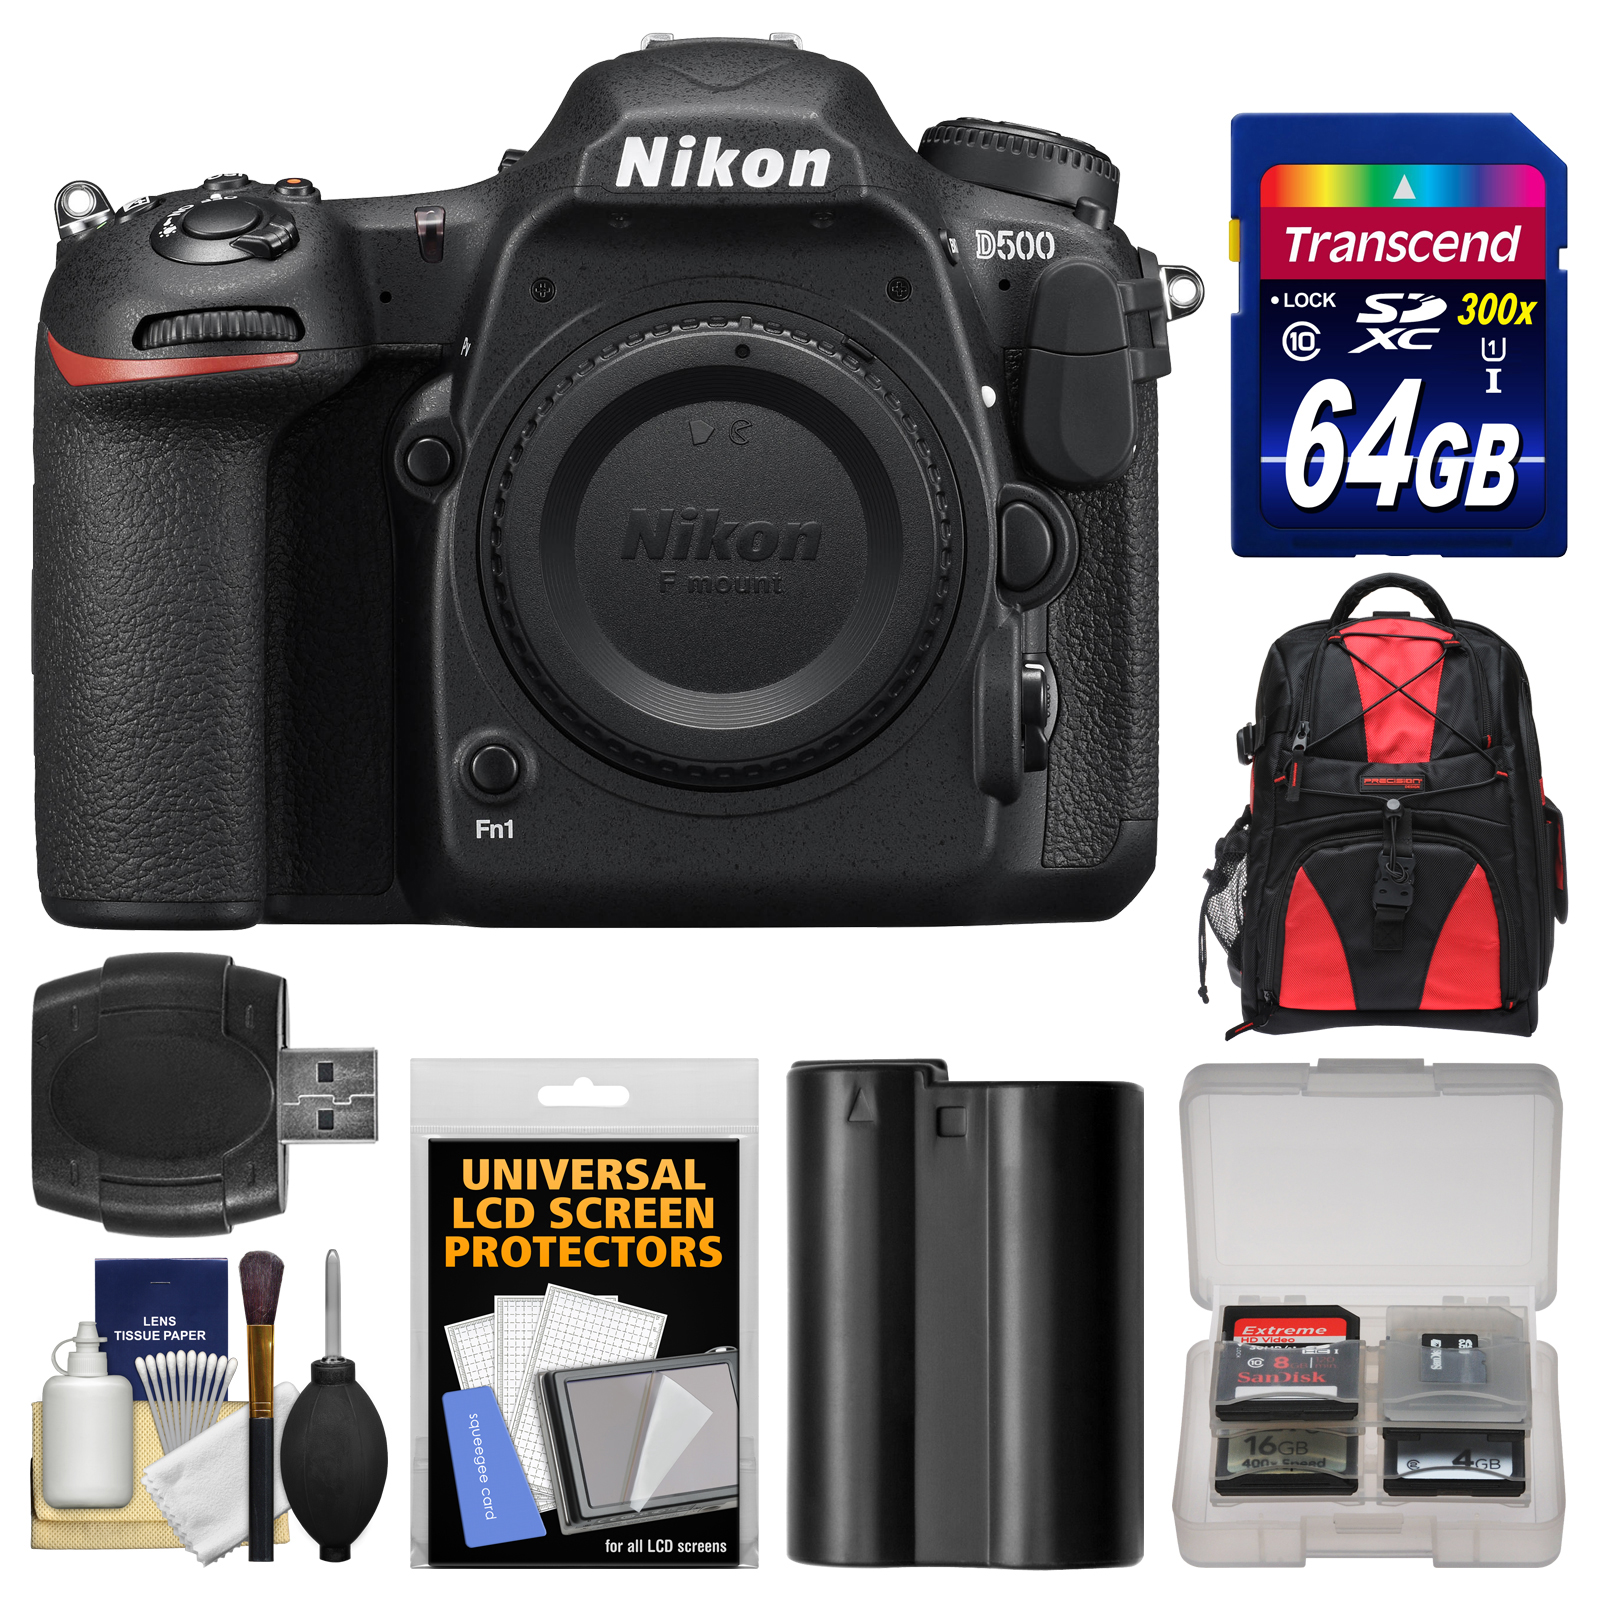 Nikon D500 Wi-Fi 4K Digital SLR Camera Body with 64GB Card + Backpack + Battery + Kit by Nikon